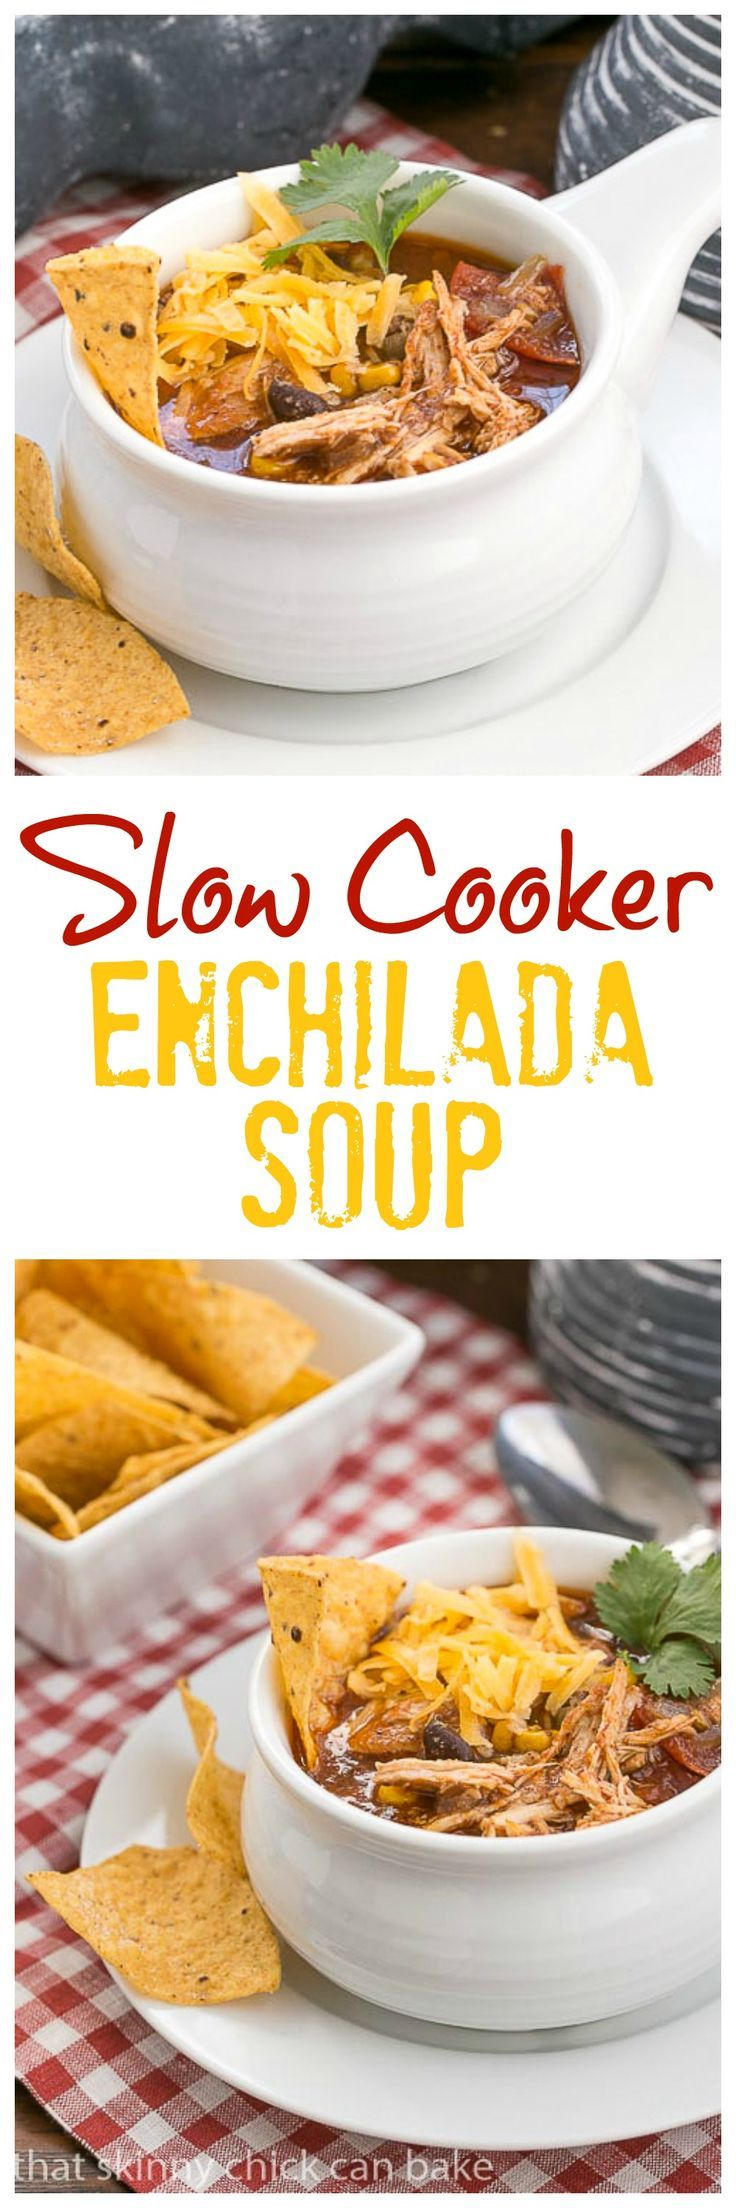 Slow Cooker Chicken Enchilada SoupSlow Cooker Chicken Enchilada Soup | A spicy, comforting Tex-Mex soup @lizzydo